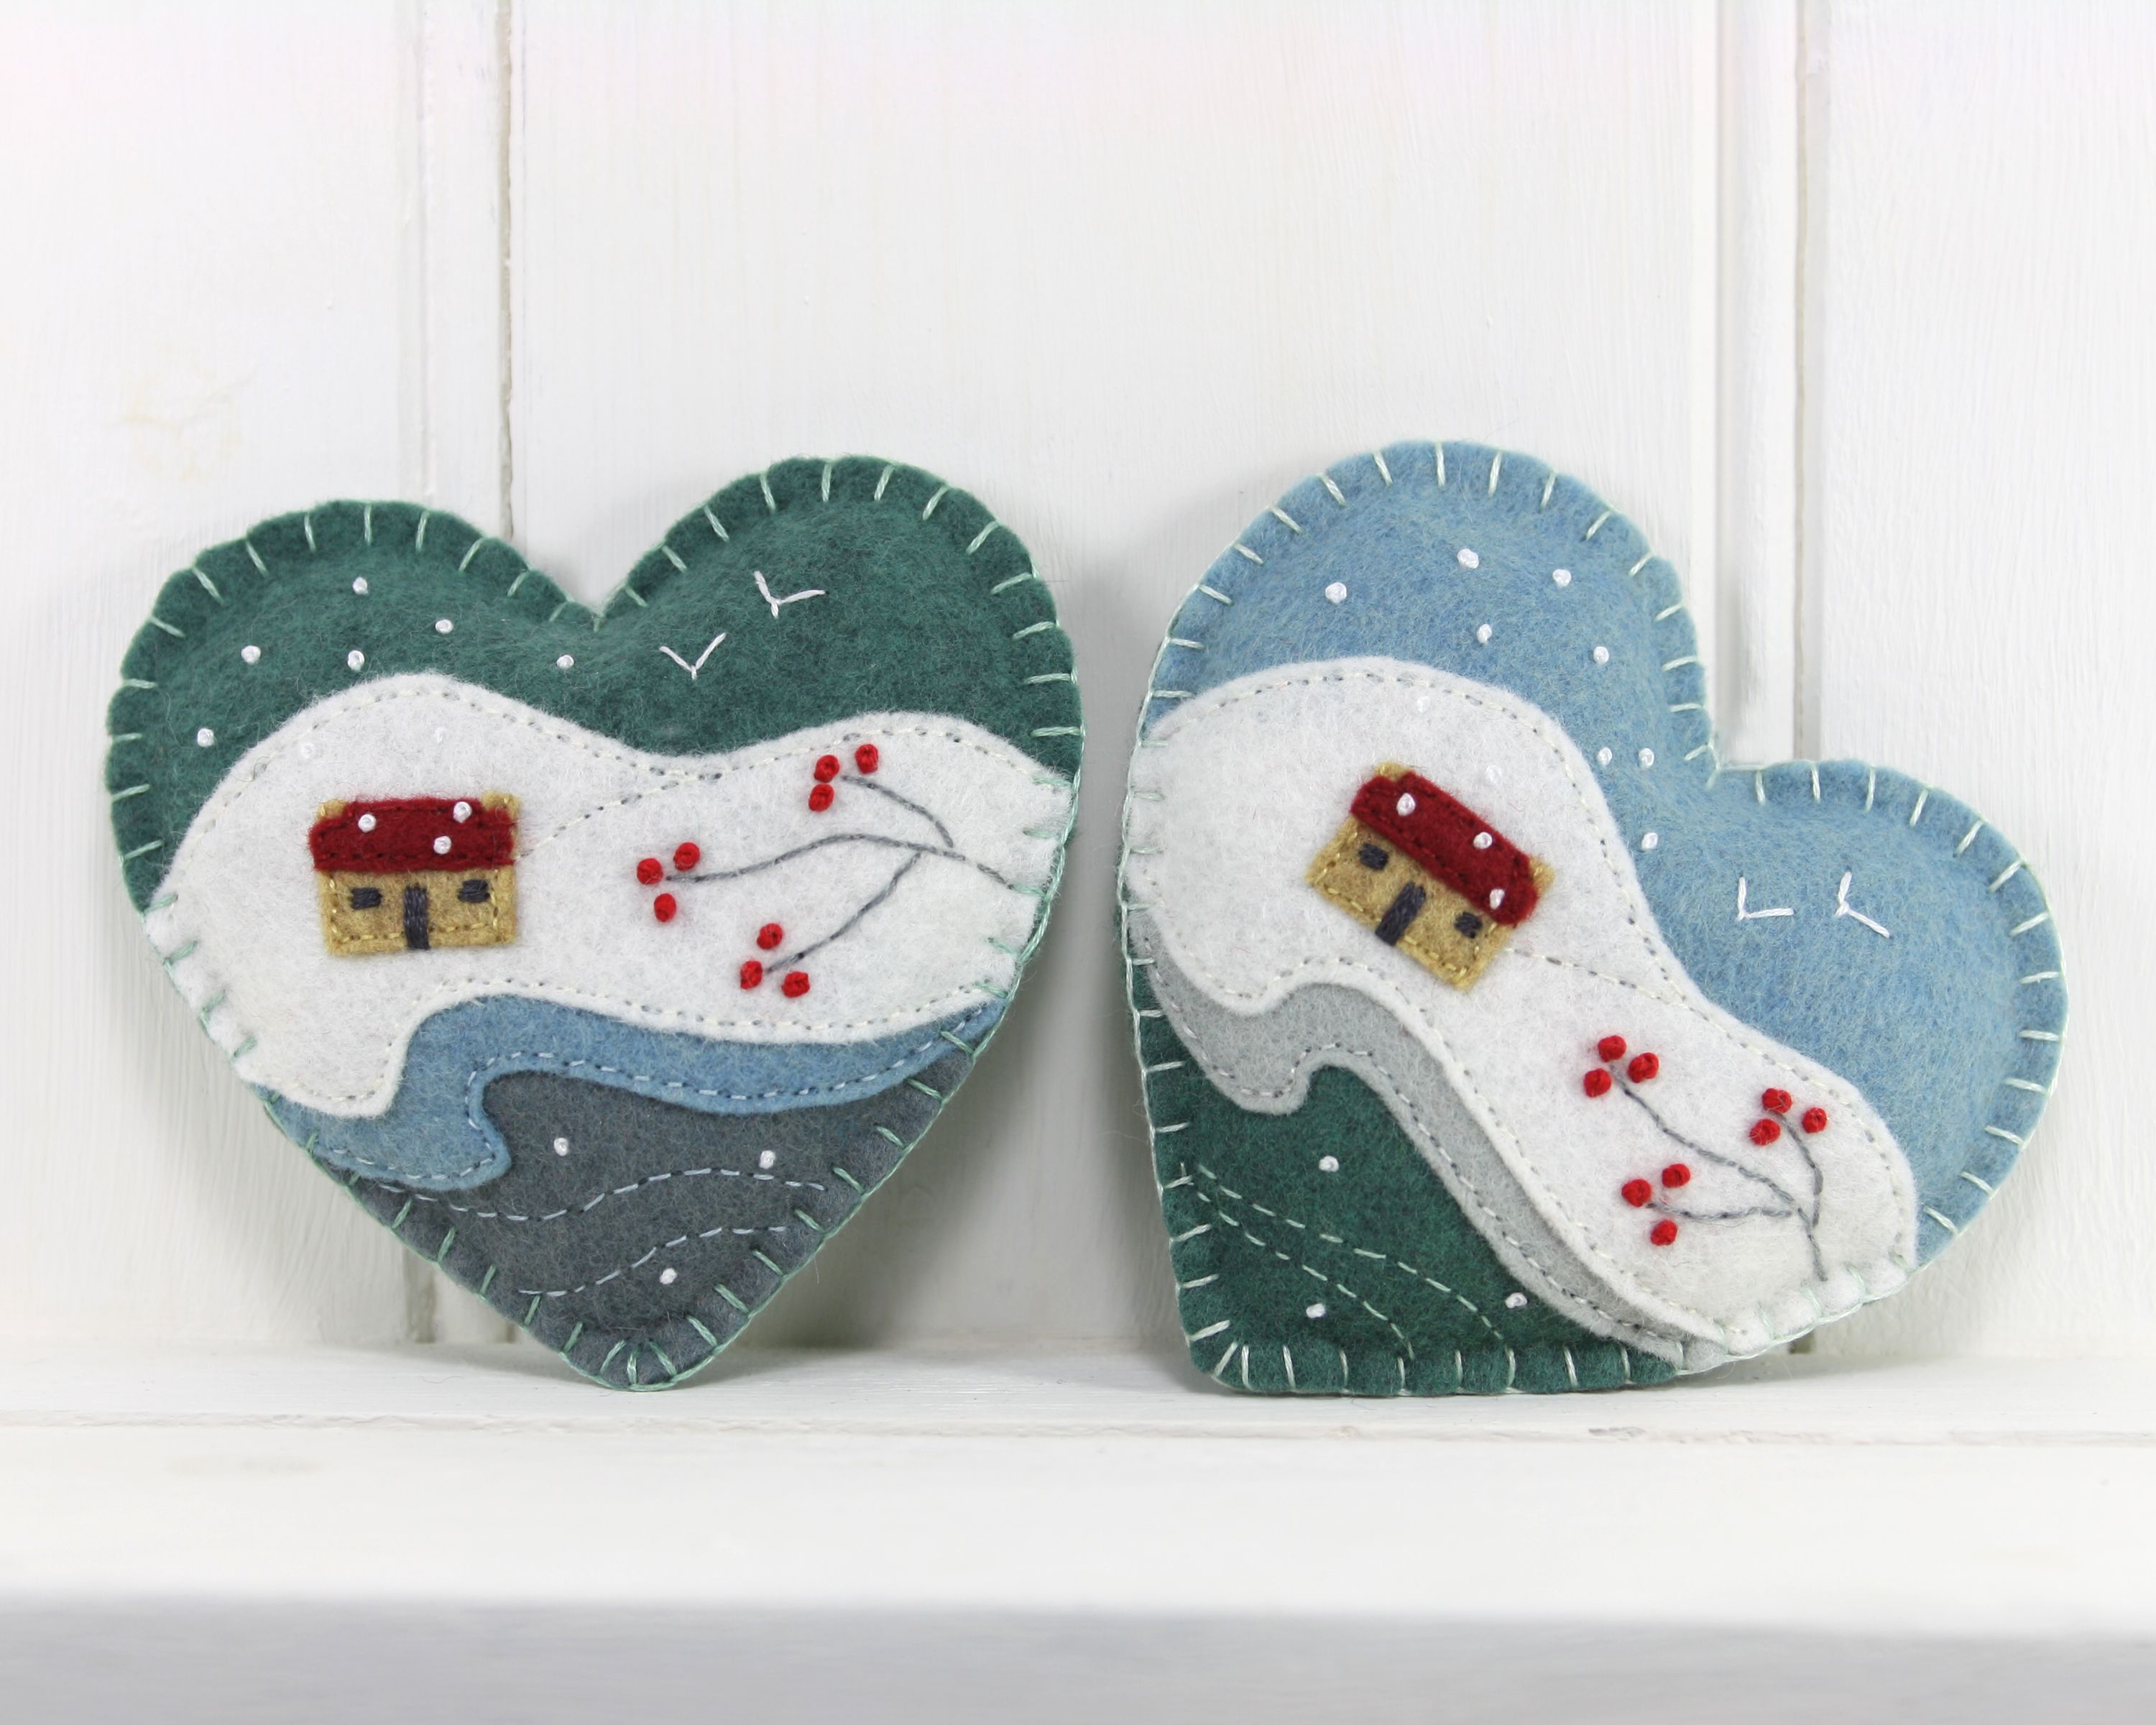 Snowy landscape cottage and berries felt christmas ornaments by